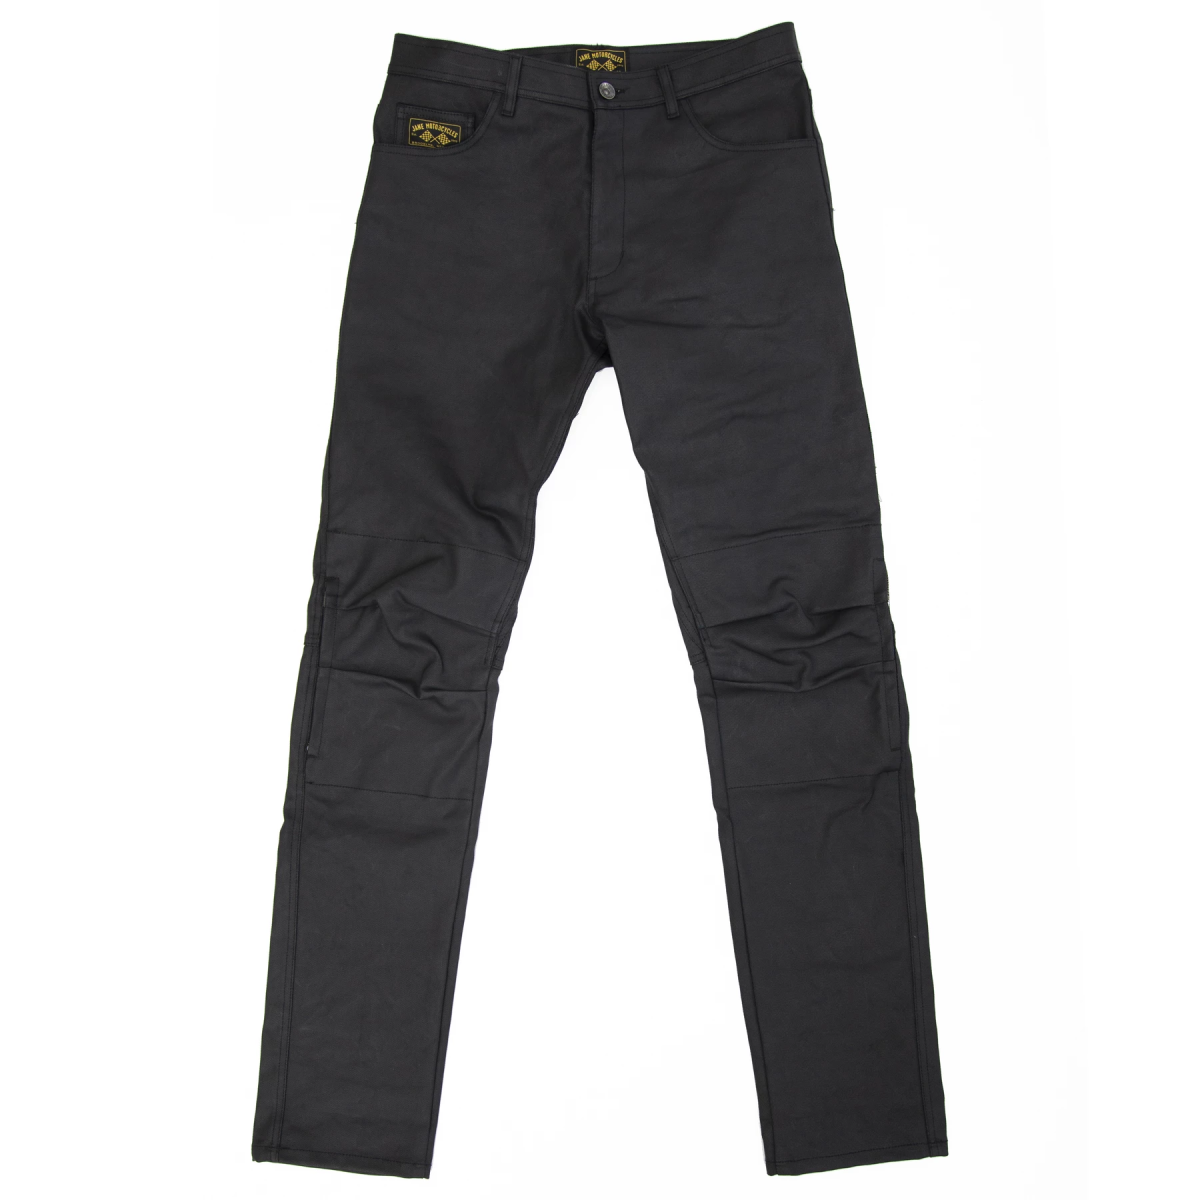 Jane Motorcycles Norman Armalith Riding Pants